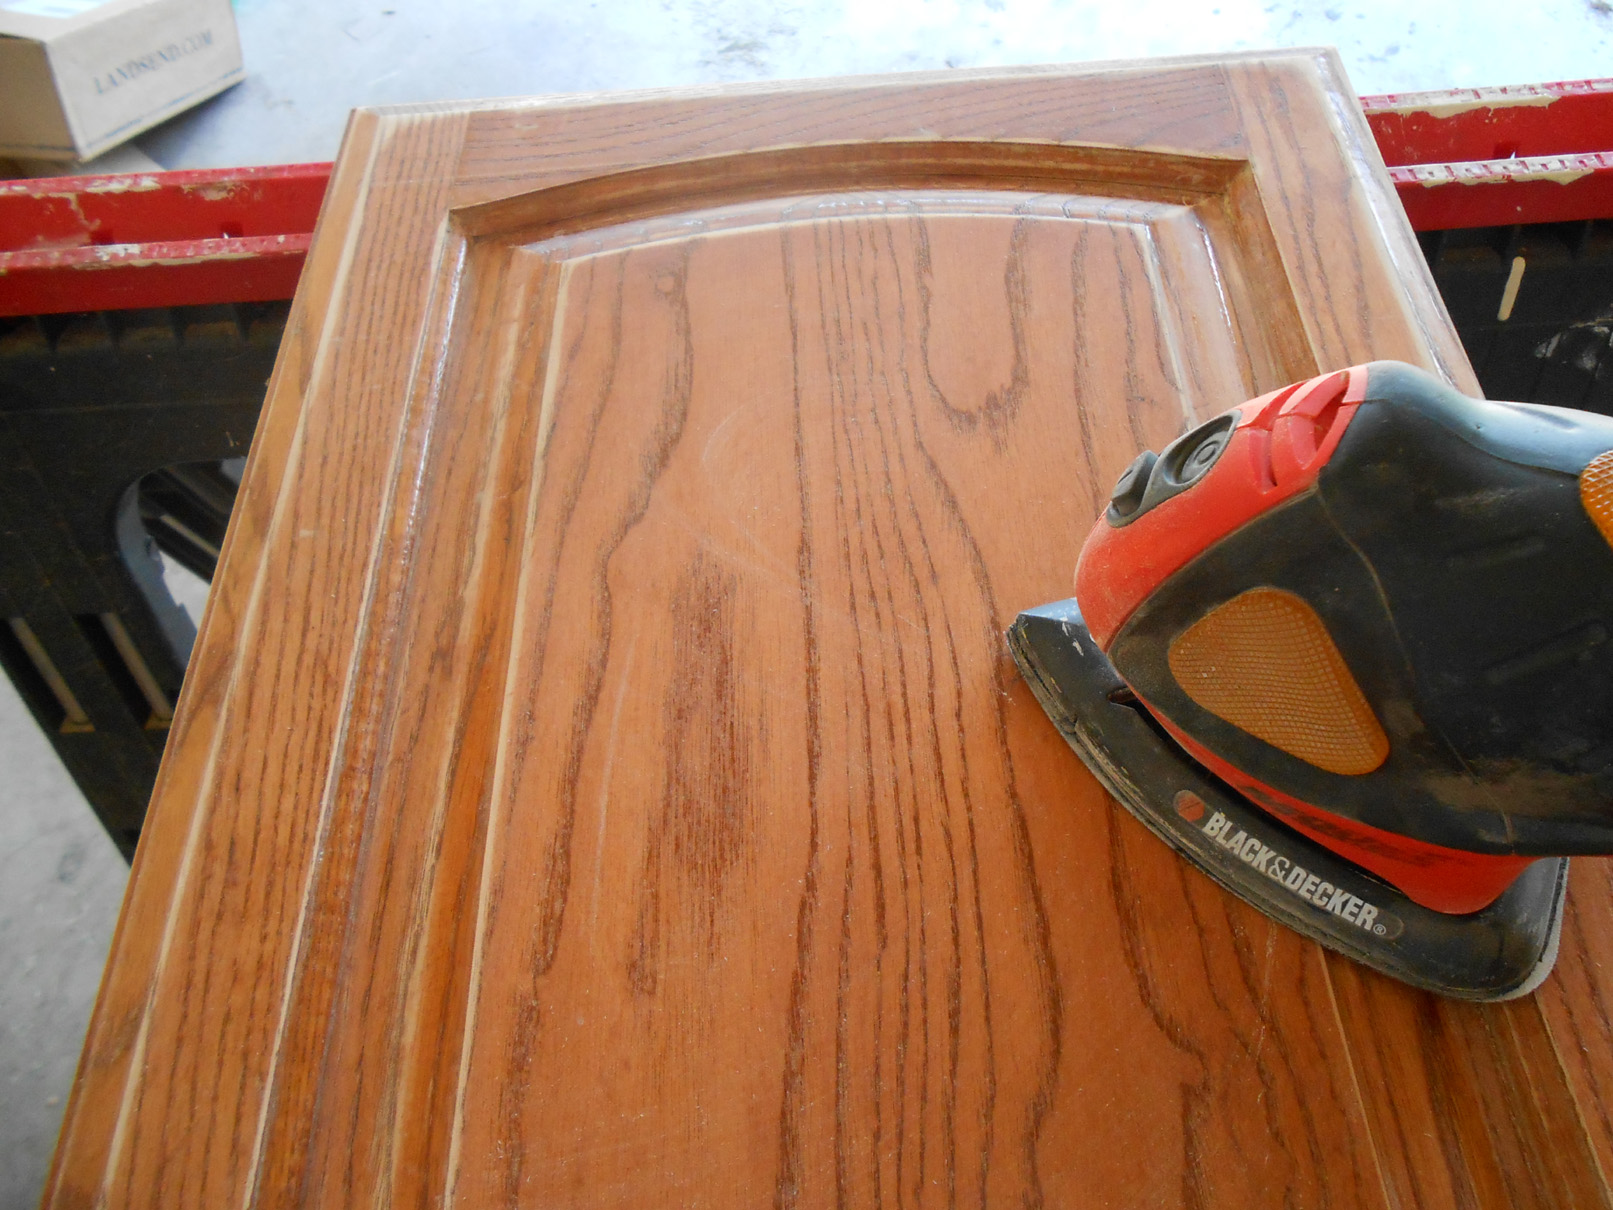 superb Sanding Kitchen Cabinet Doors #2: ... man sanding a door of a kitchen cabinet